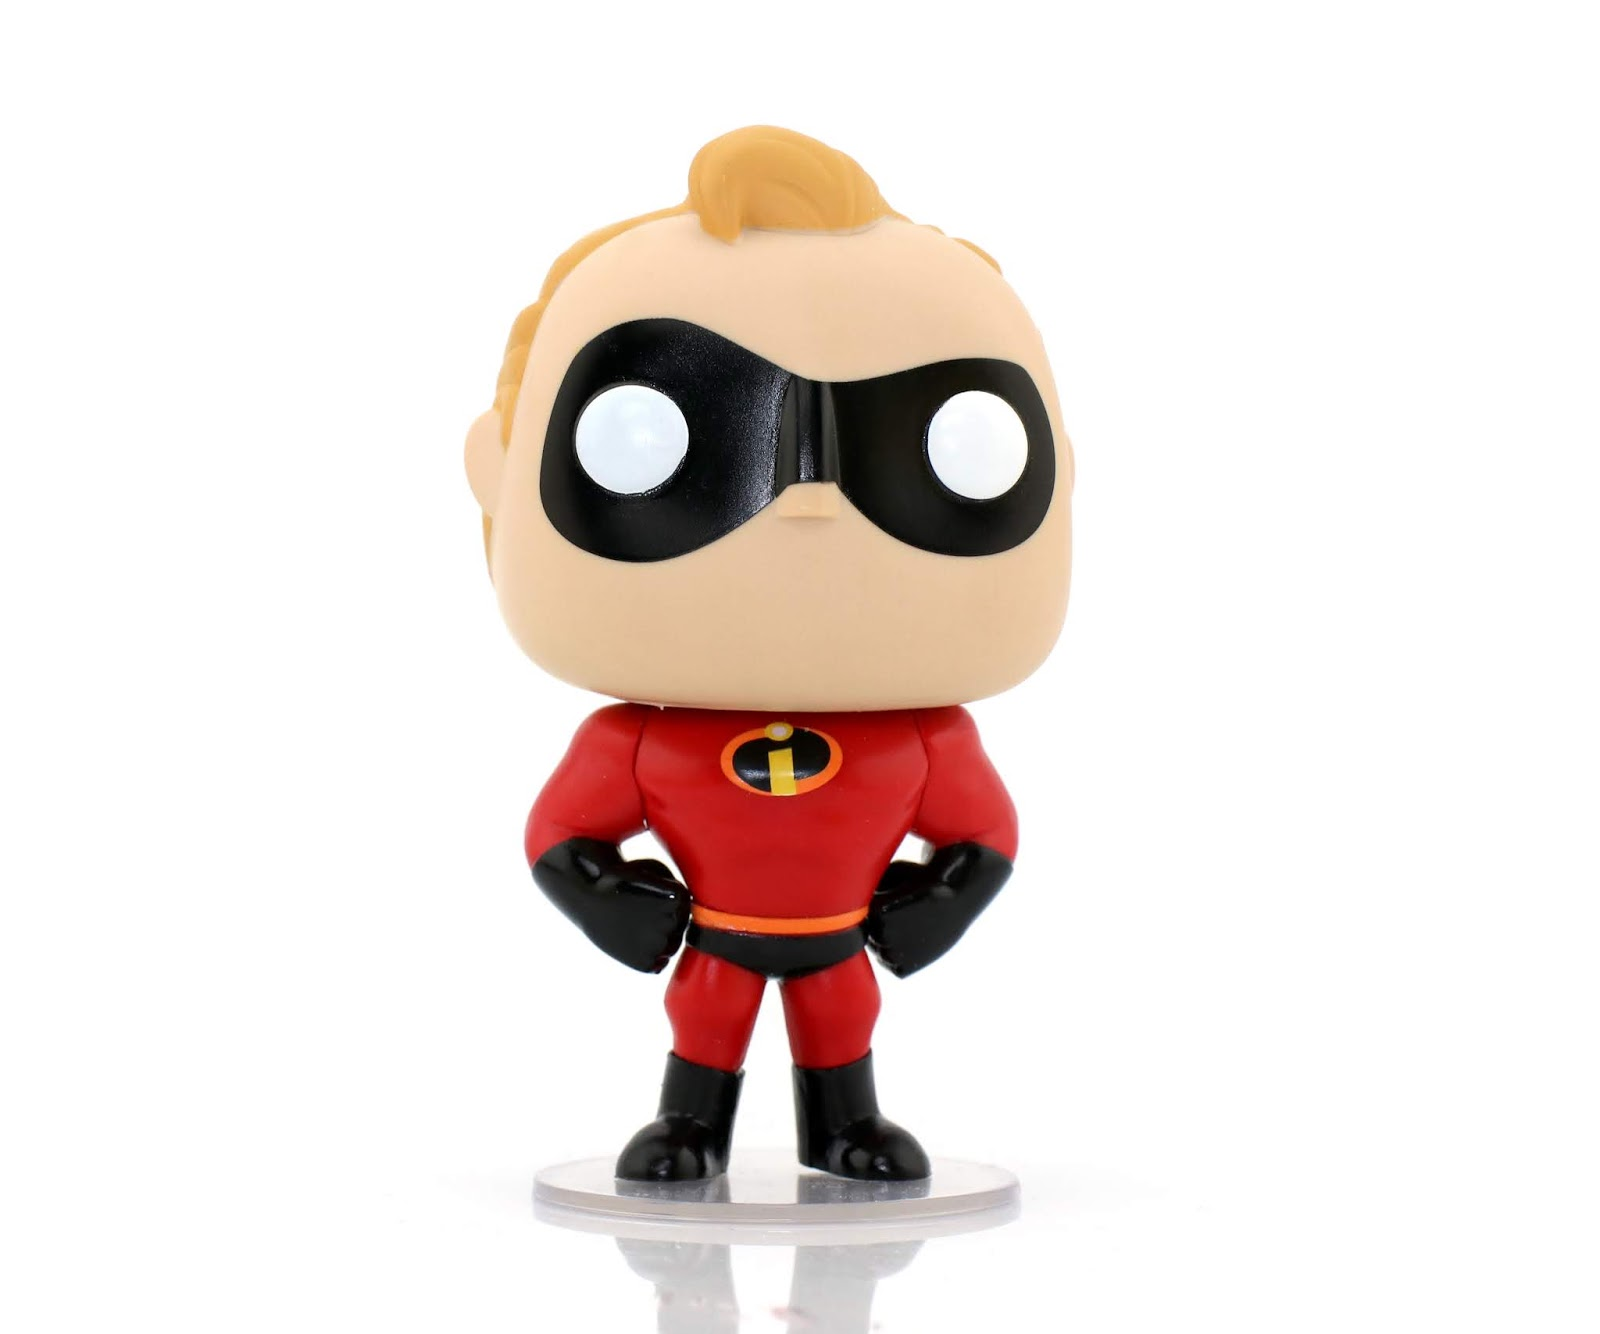 incredibles 2 funko pop review